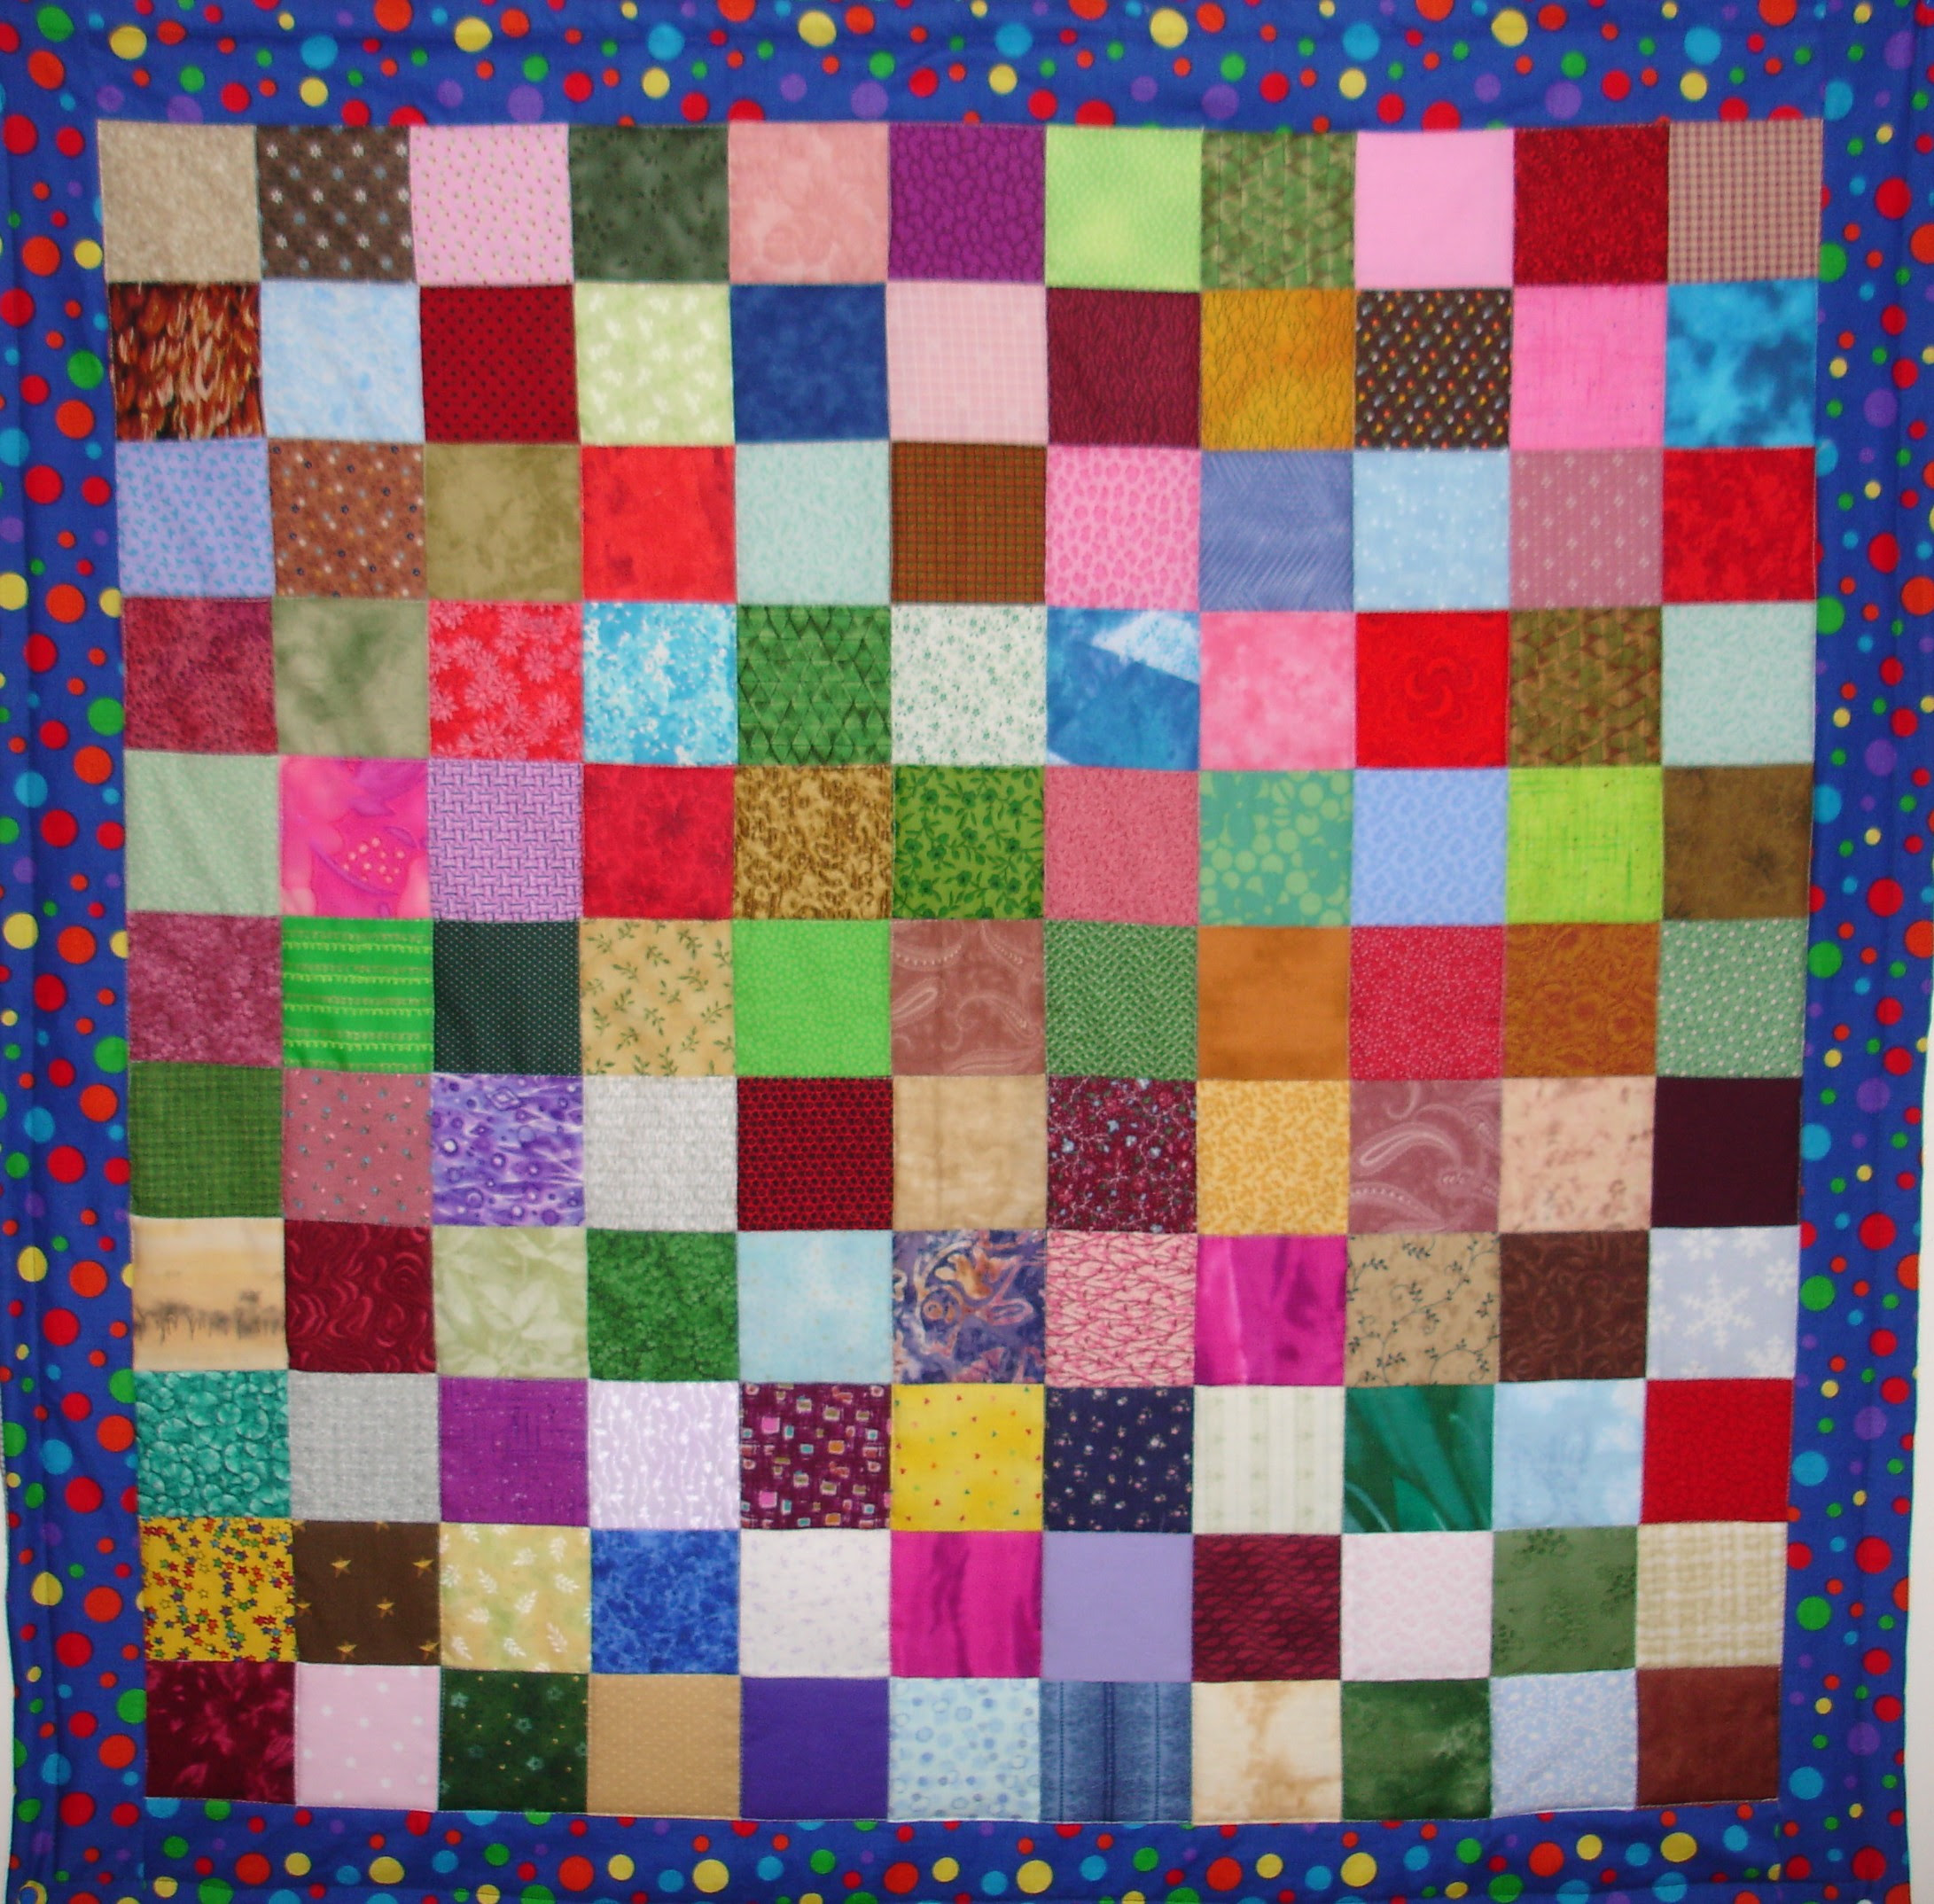 bright colorful quilt in small square shape with colorful polkadot frame